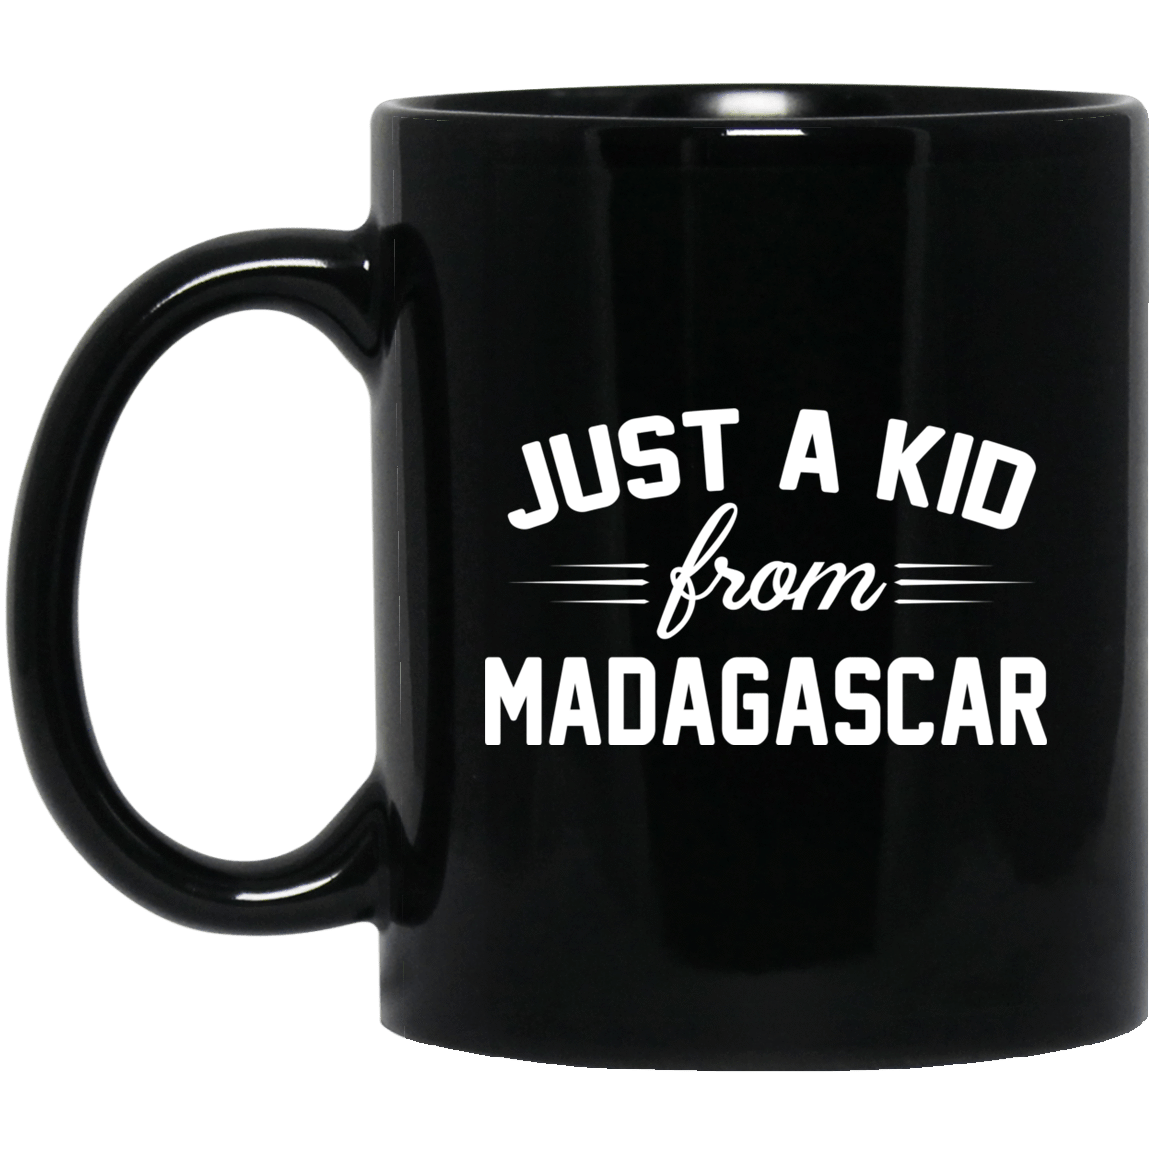 Just A Kid Store | Madagascar Mug 1065-10181-72111195-49307 - Tee Ript